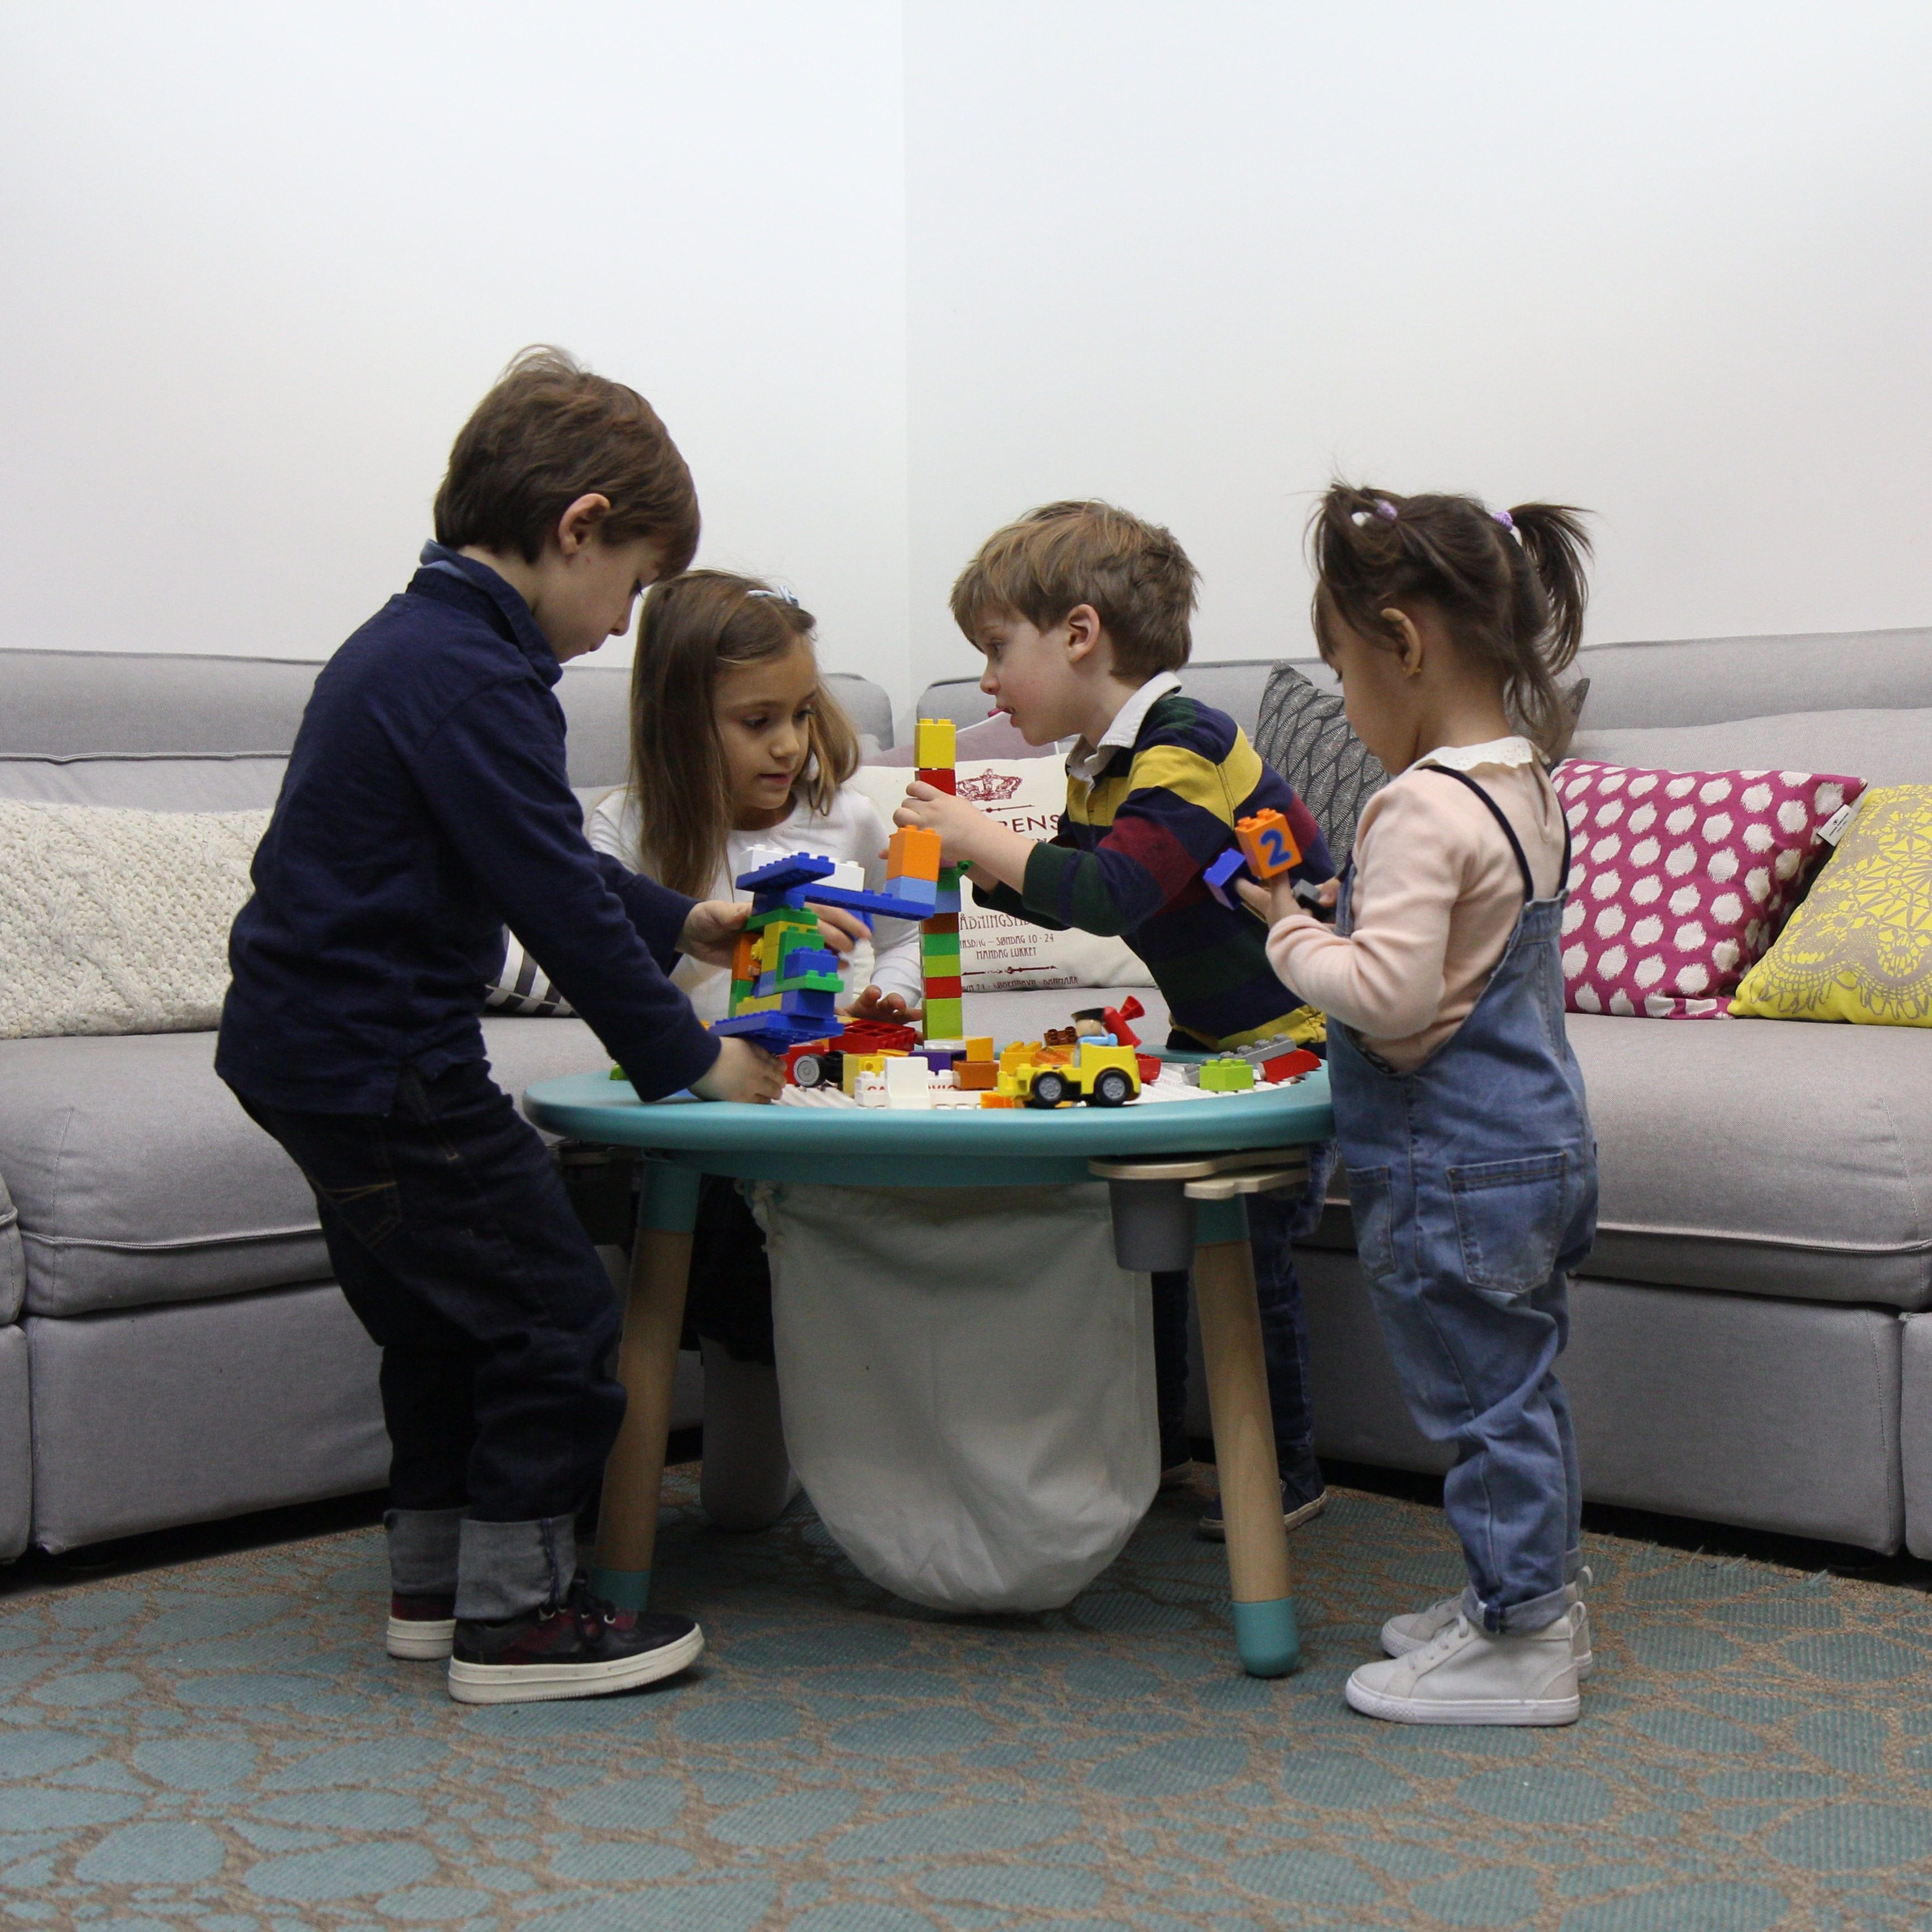 Children play table with activities and games for all age